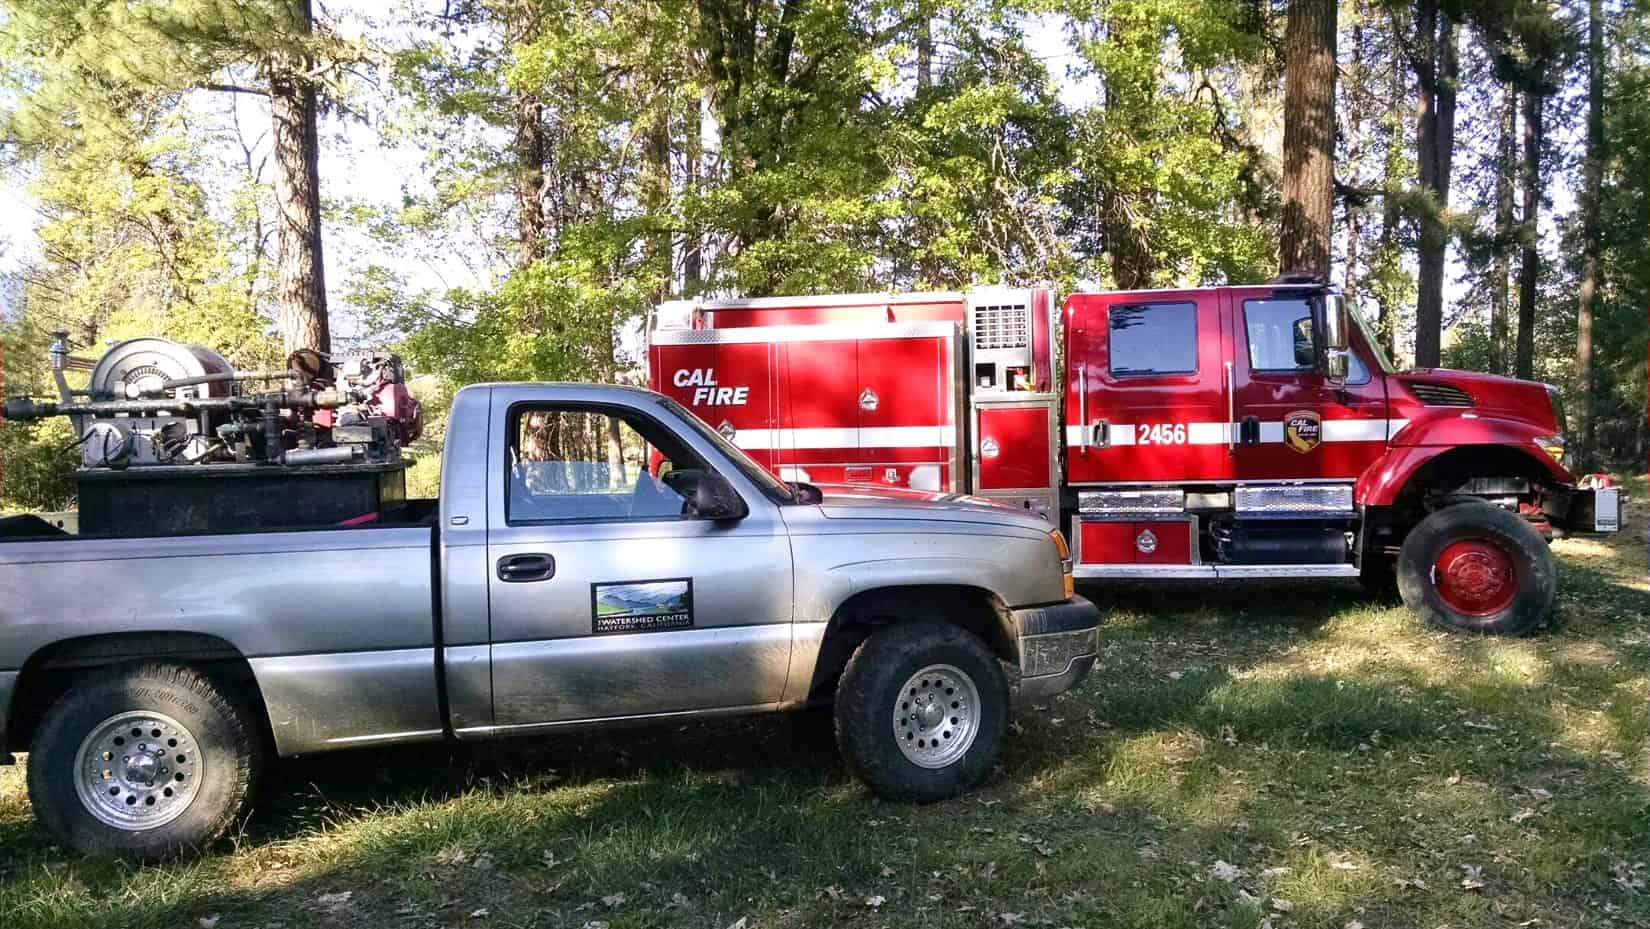 A Watershed Research and Training Center truck and a CAL FIRE truck